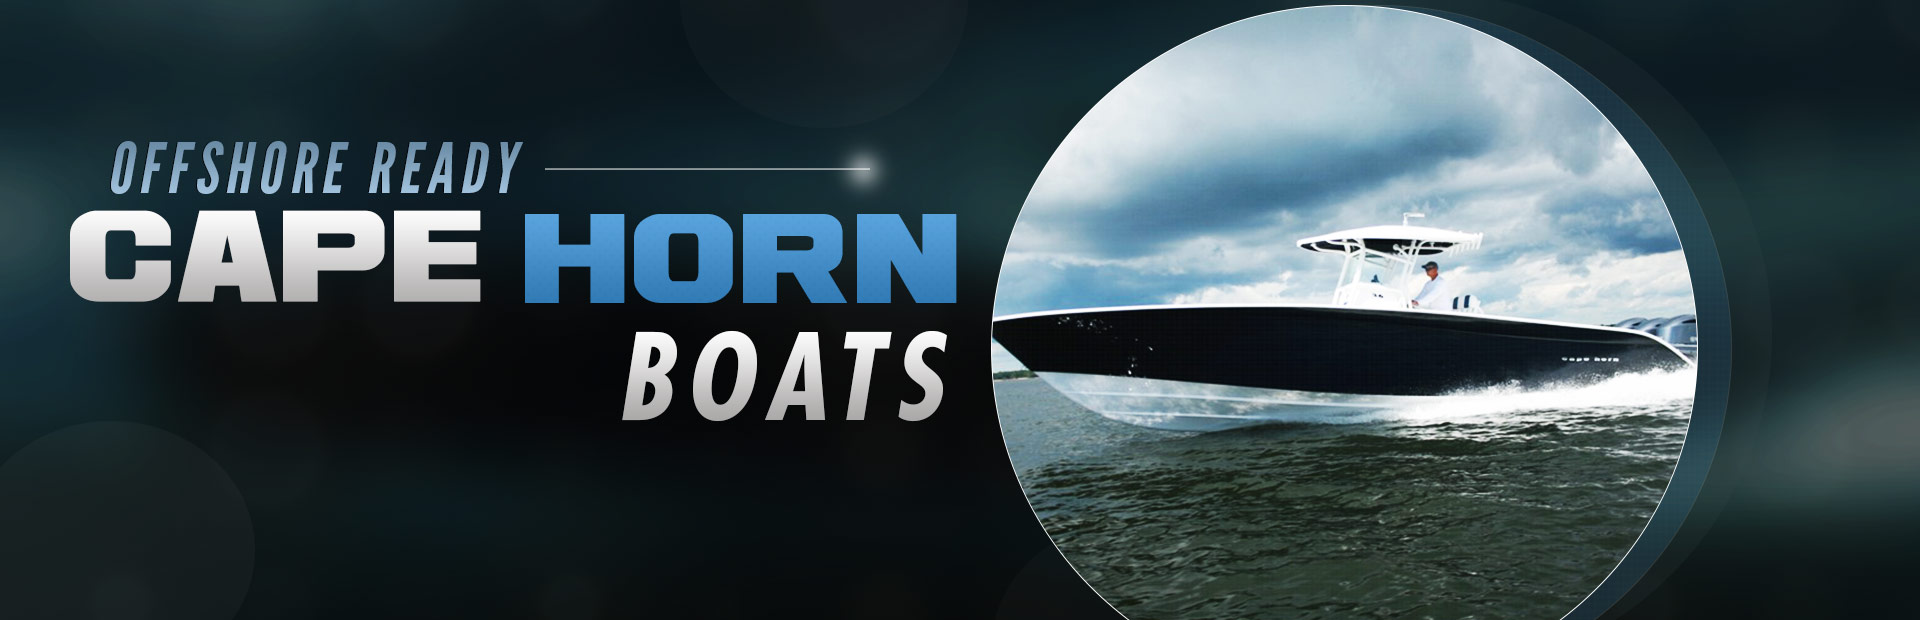 Cape Horn Boats: Click here to view the models.